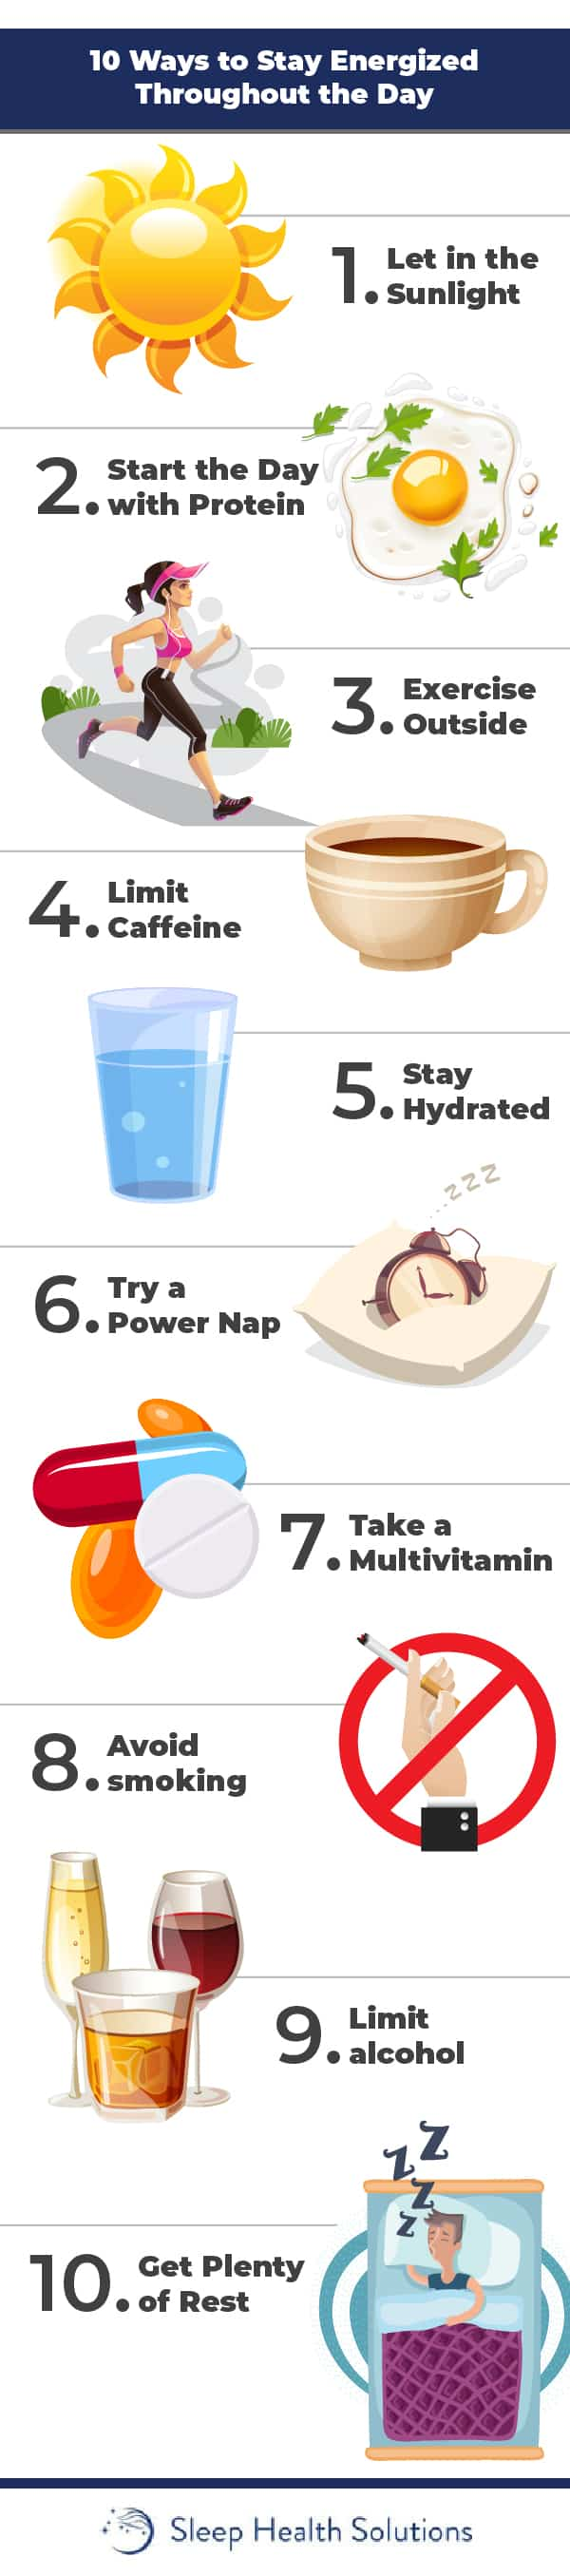 10 Ways To Stay Energized Blog Sleep Health Solutions